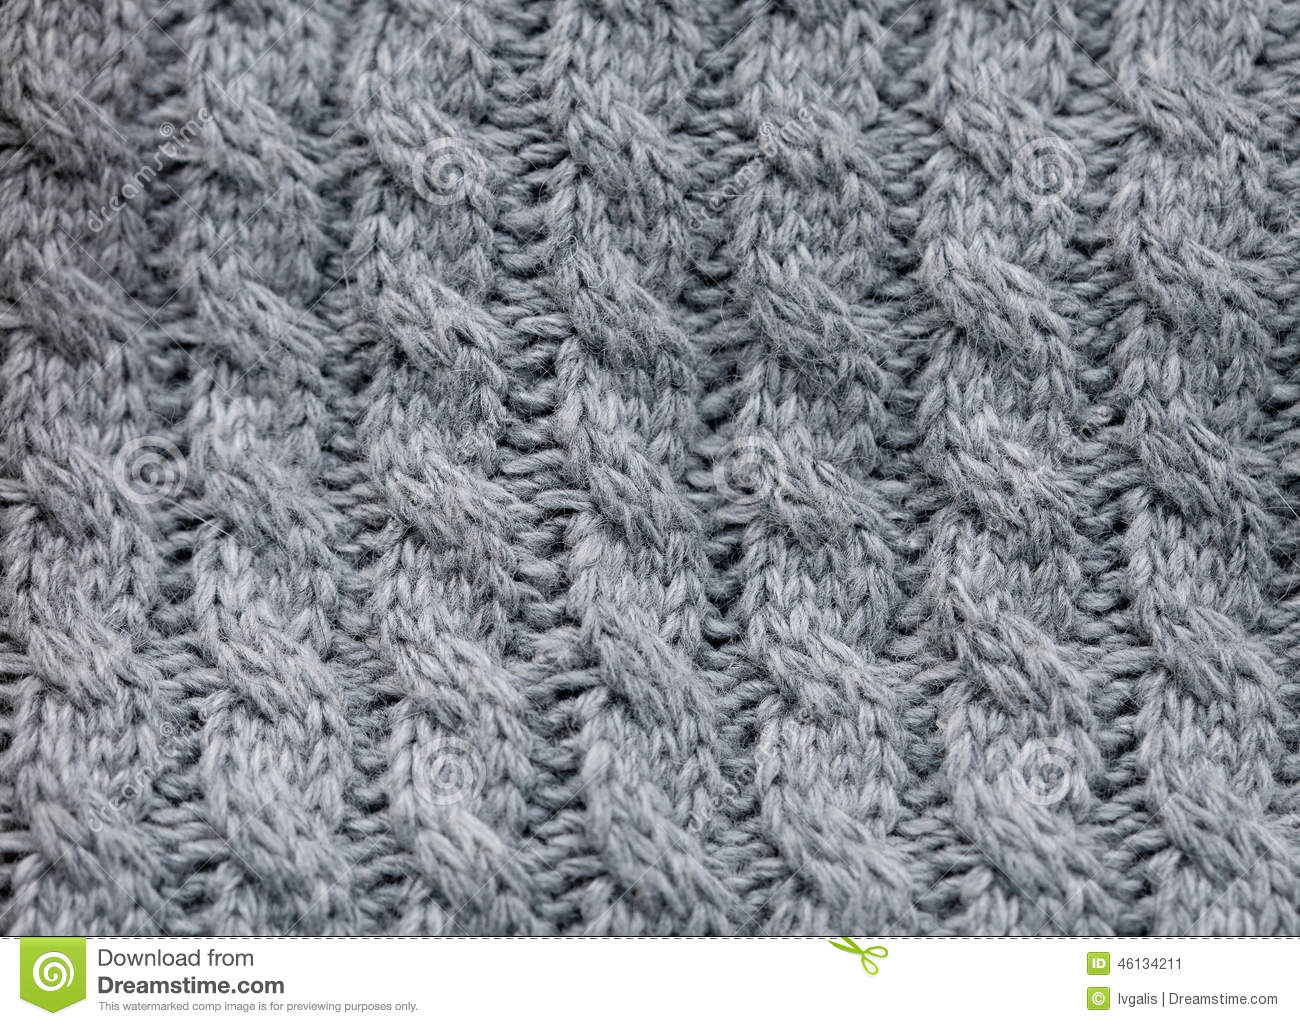 Close Up Photography Of Gray Knit Textile: Gray Knitted Fabric Stock Photo